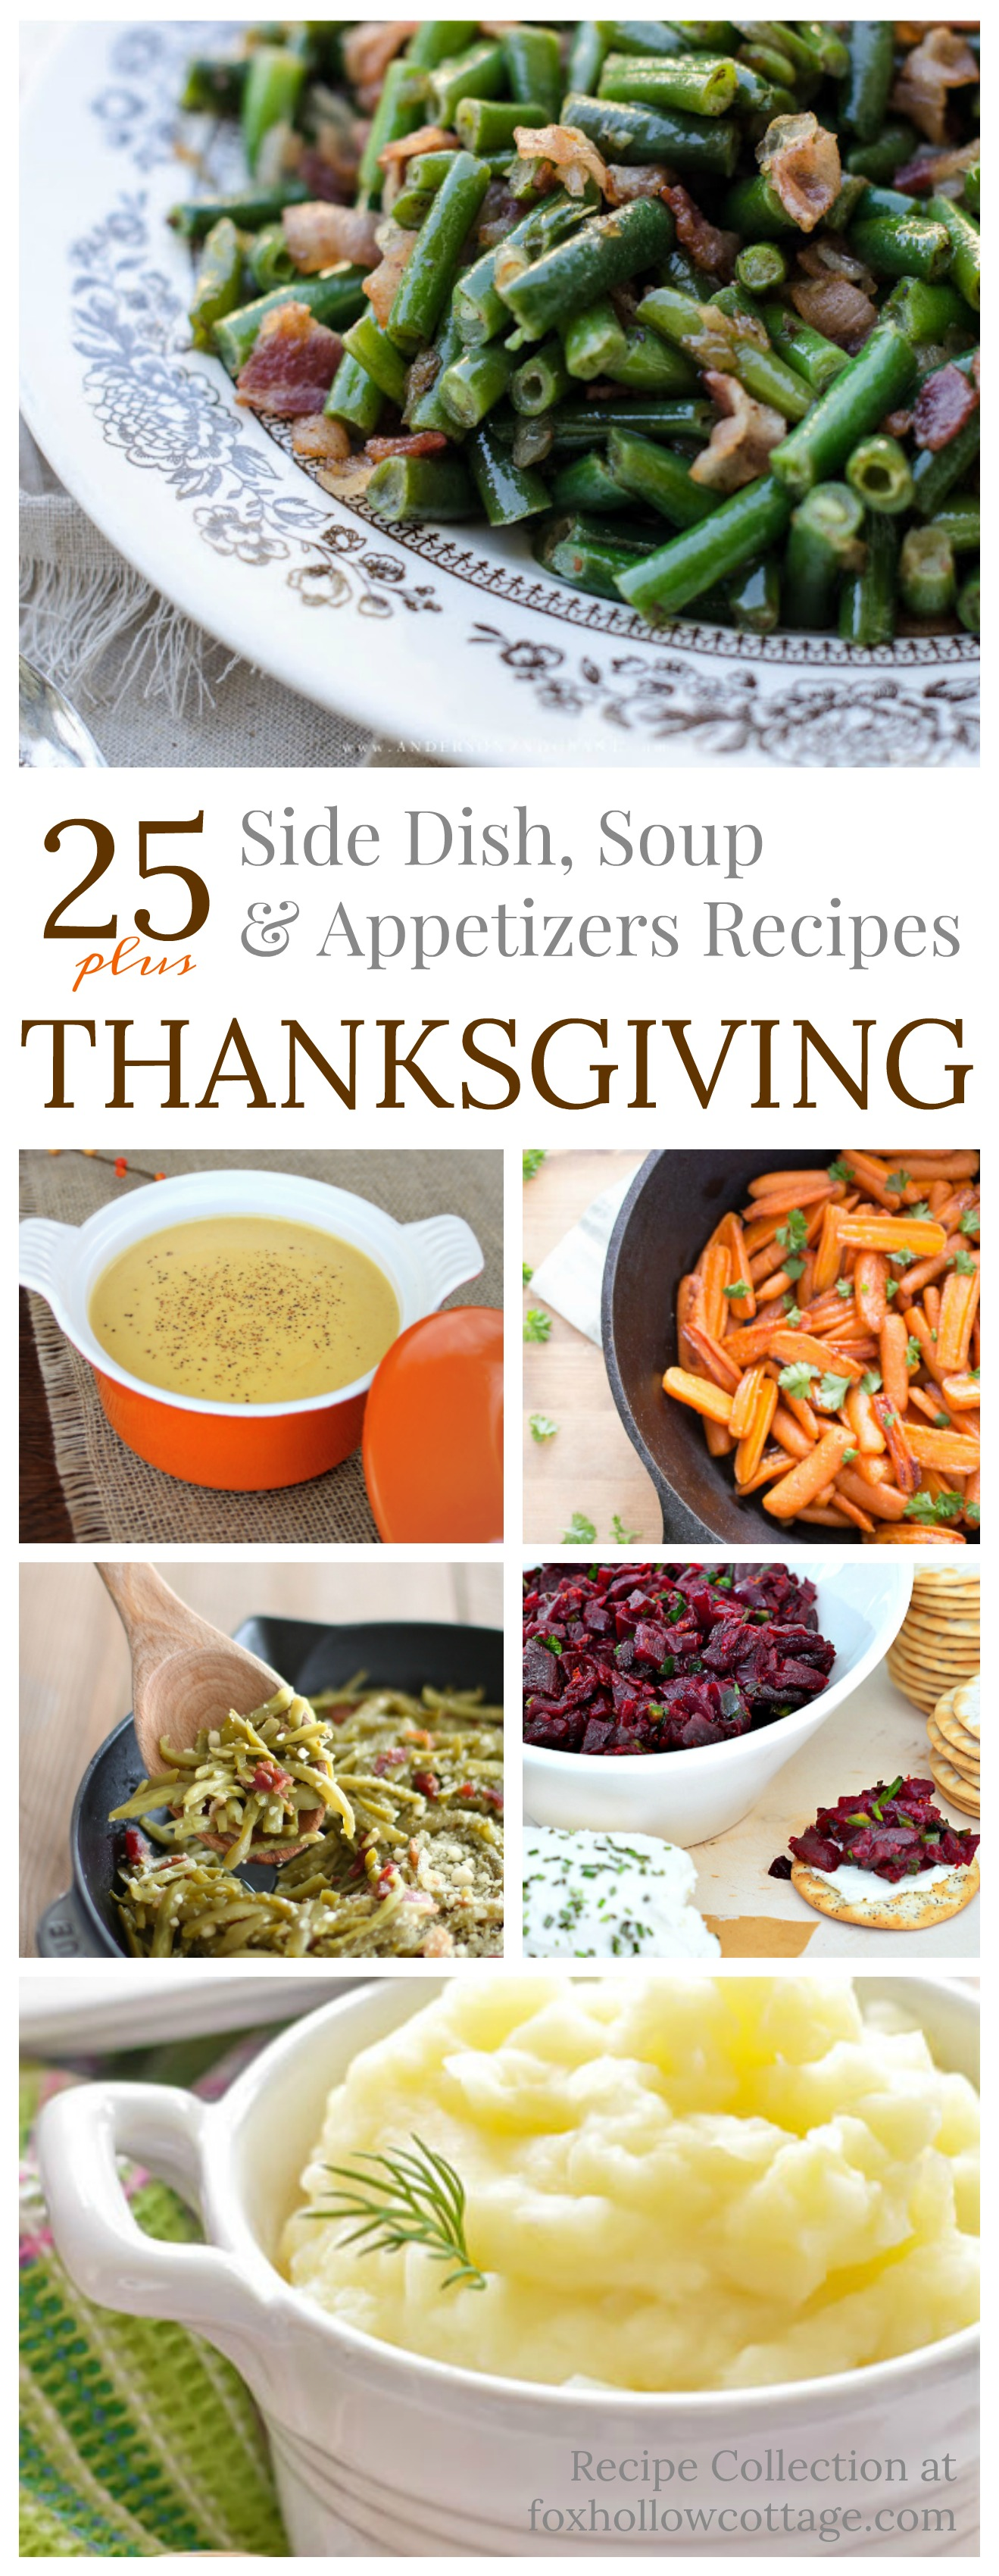 25+ Thanksgiving Side Dish, Soup And Appetizer Recipes at foxhollowcottage.com